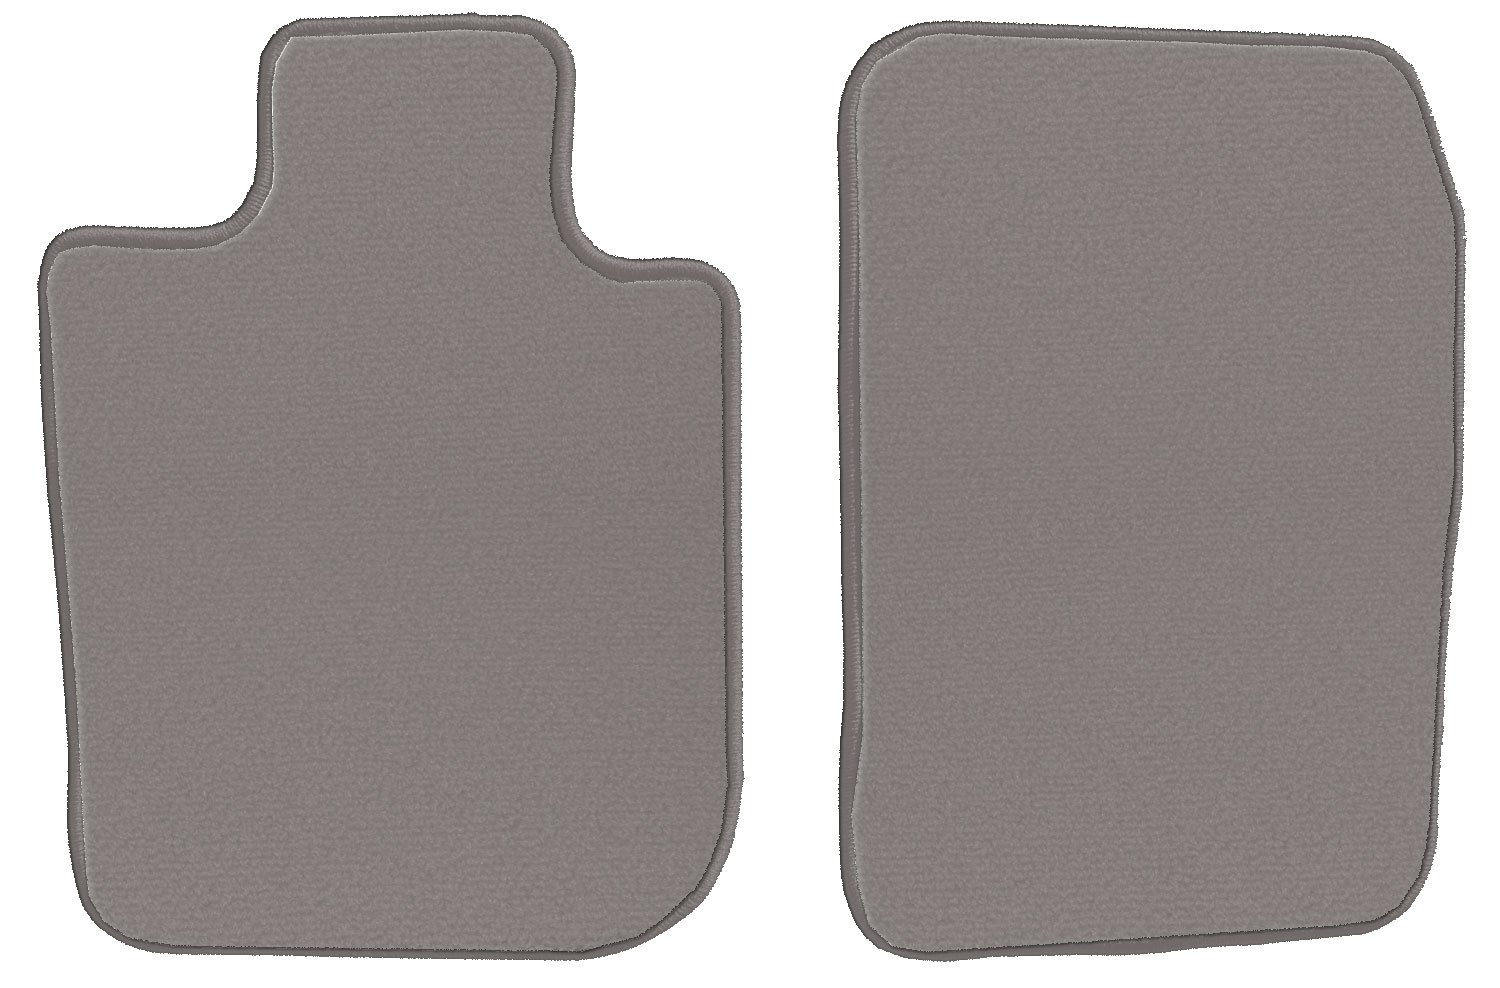 2016 2011 2013 2007 2015 2017 GGBAILEY D2339A-F1A-GY-LP Custom Fit Car Mats for 2006 2008 2010 2012 2018 Kia Rio 5 Grey Loop Driver /& Passenger Floor 2014 2009